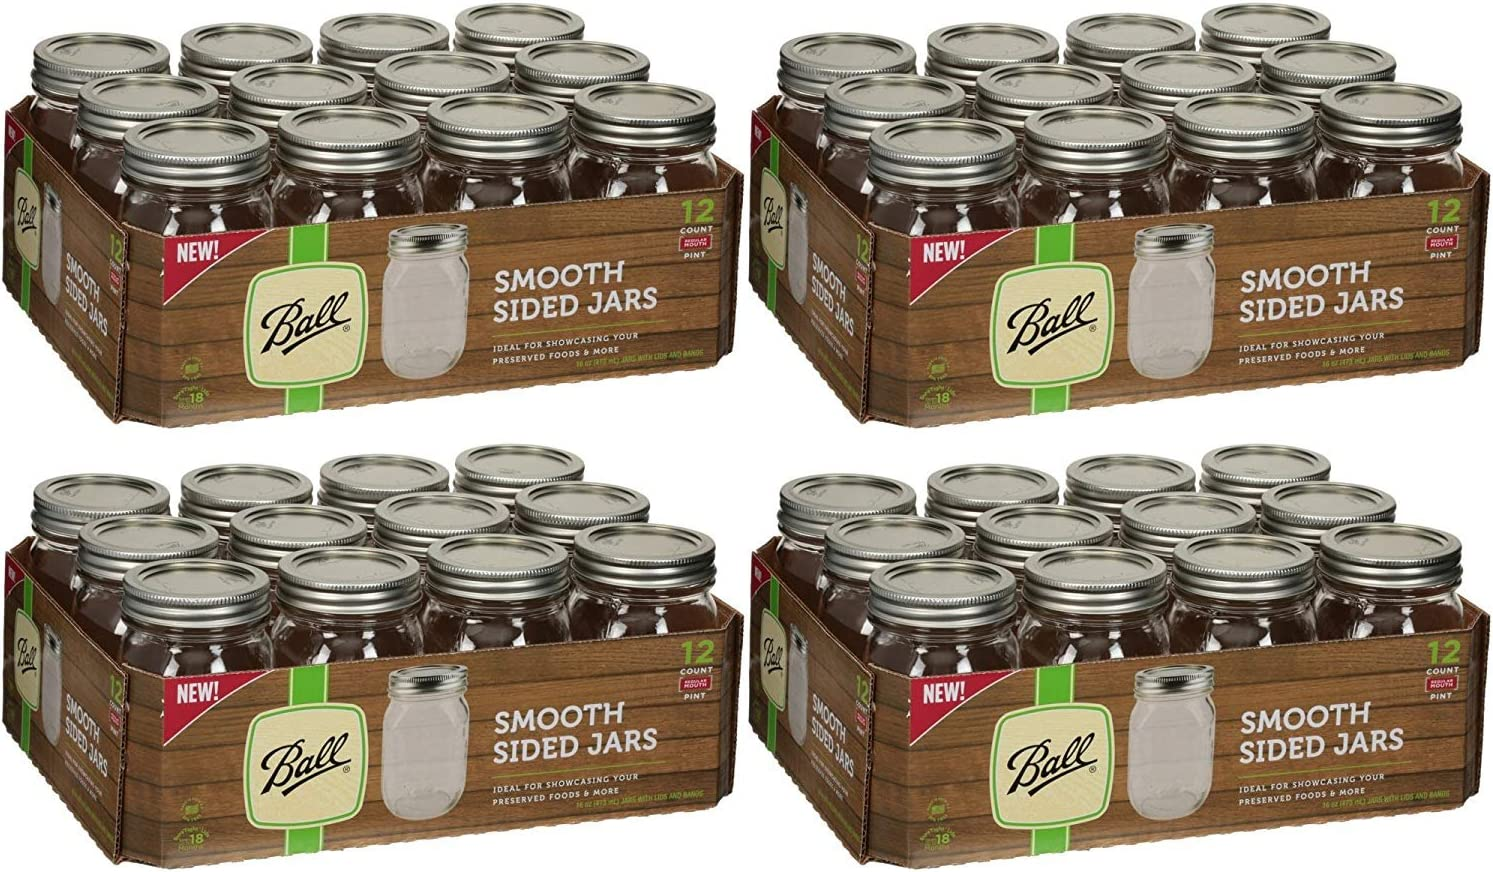 16oz - 12cnt 12 count 2-Pack Ball Wide Mouth Pint Jars